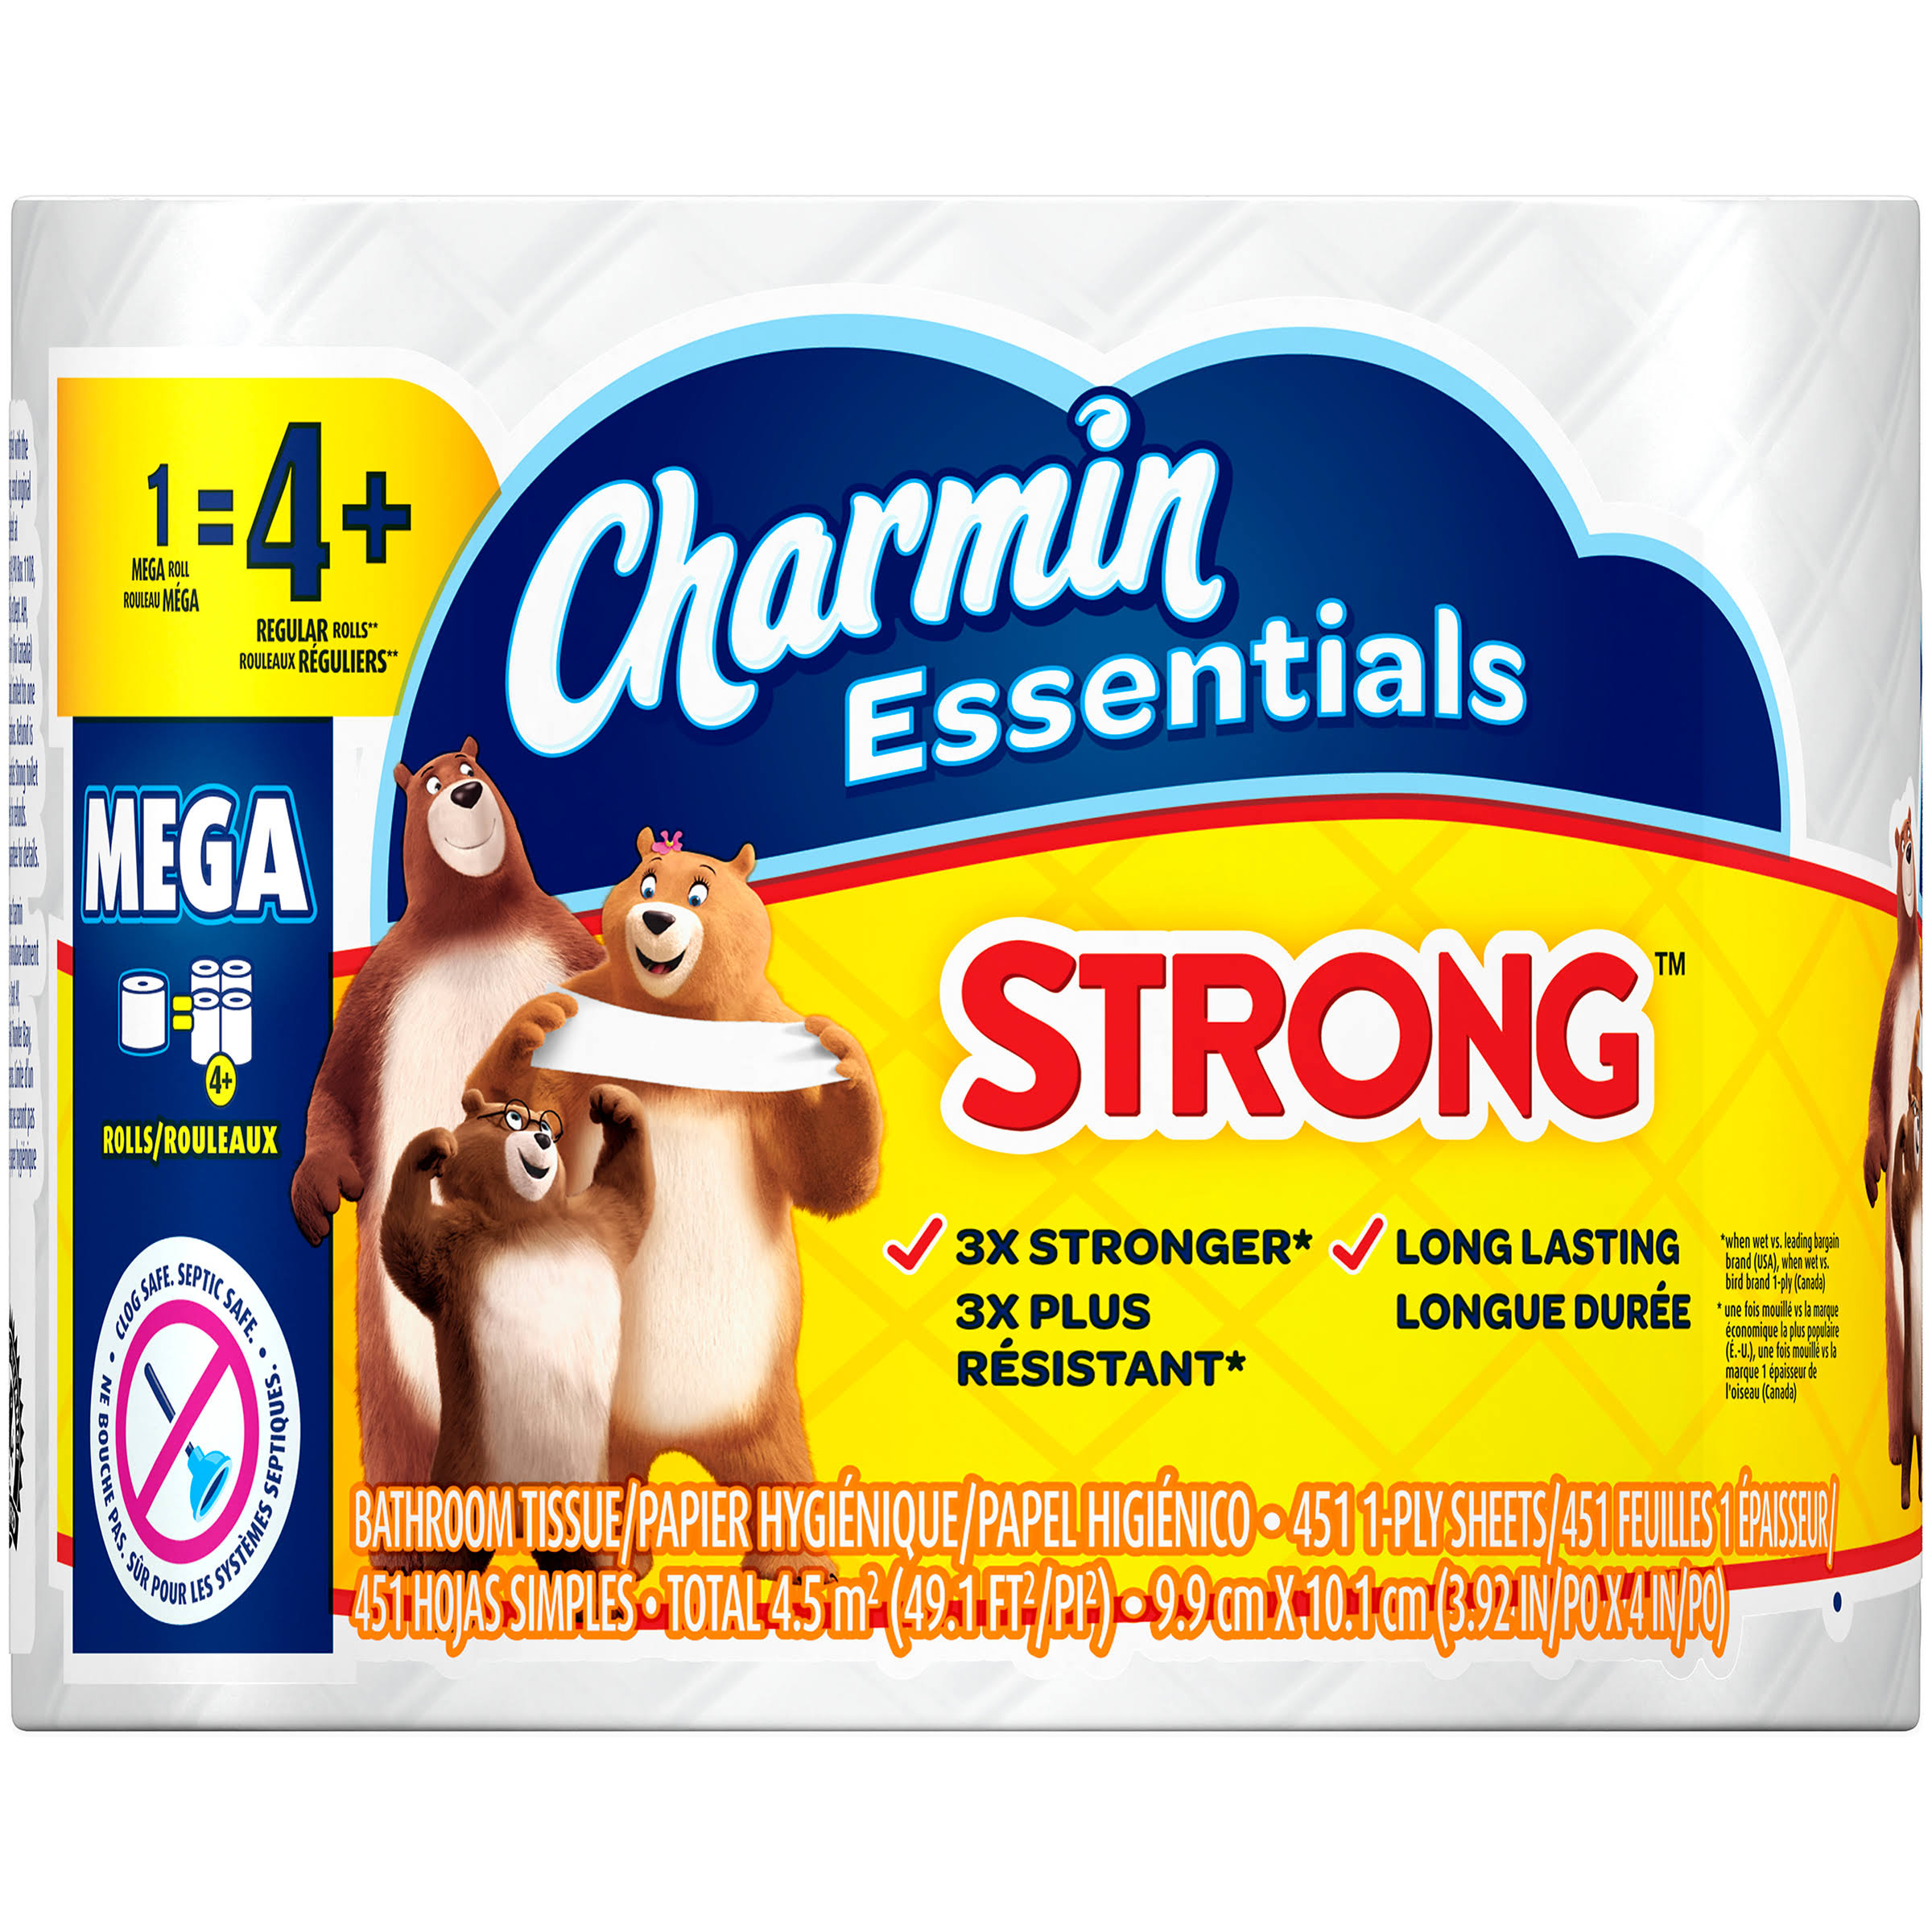 Charmin Essentials Strong Toilet Paper - 4ct